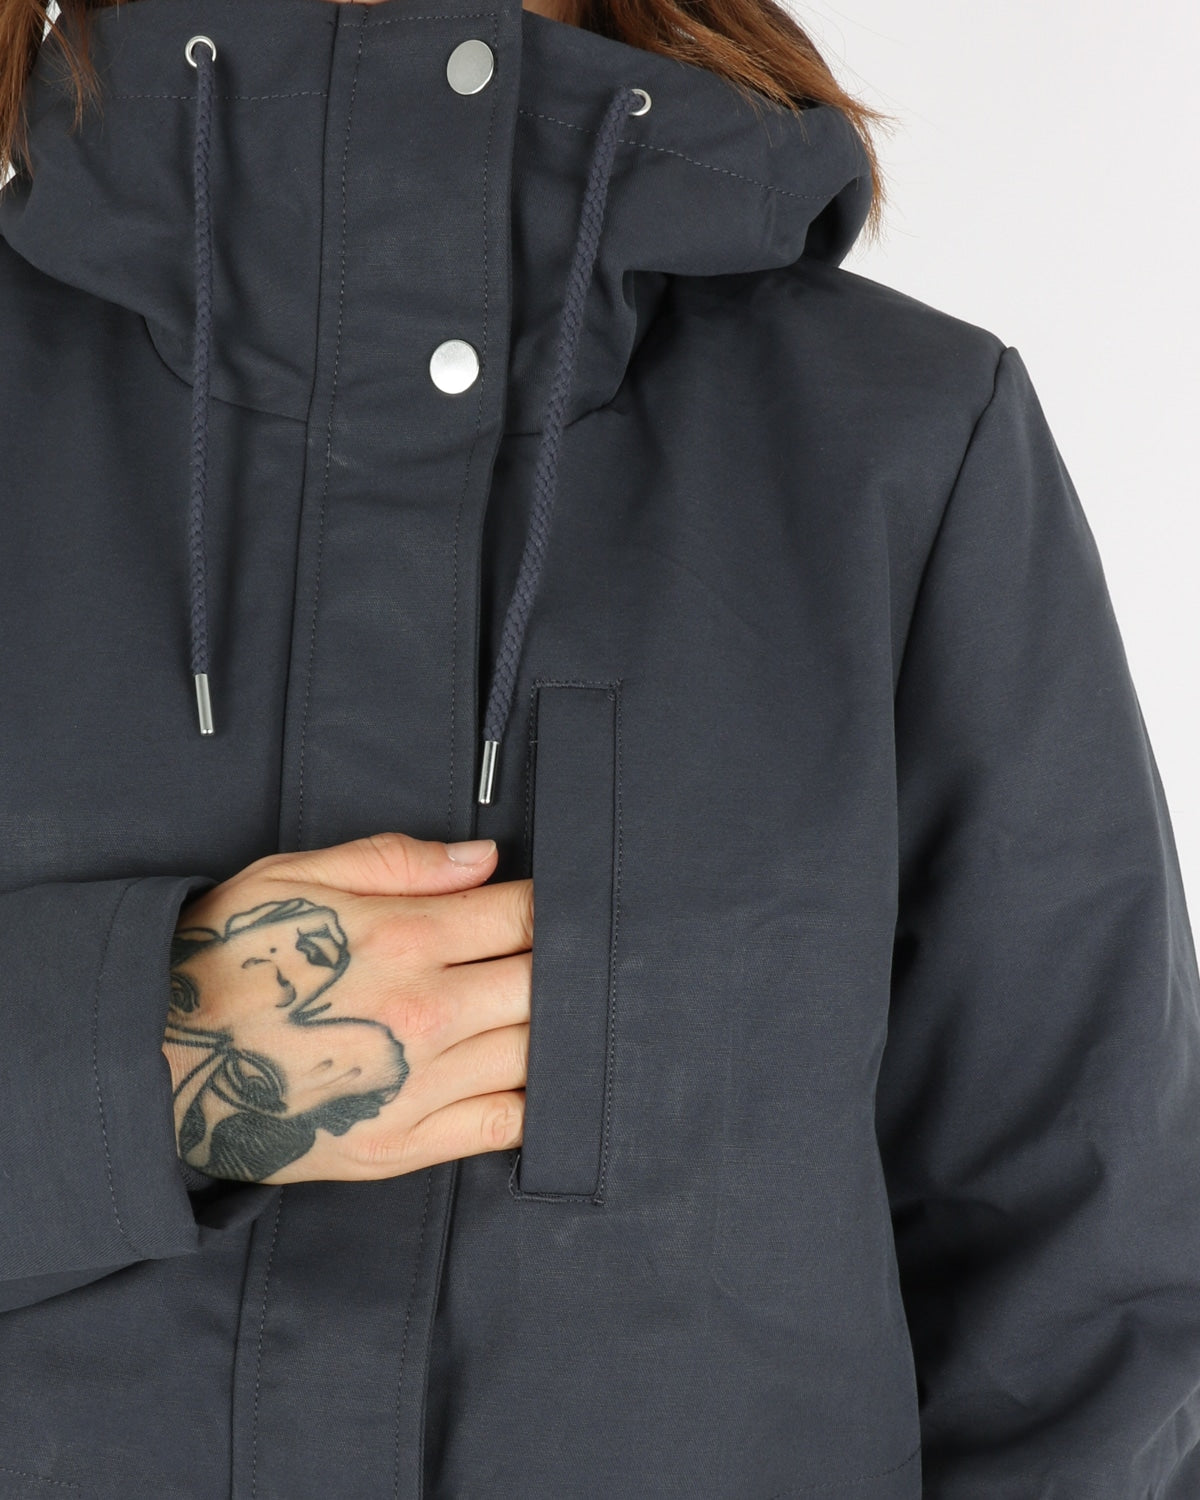 selfhood_parka jacket 77130_navy_3_4